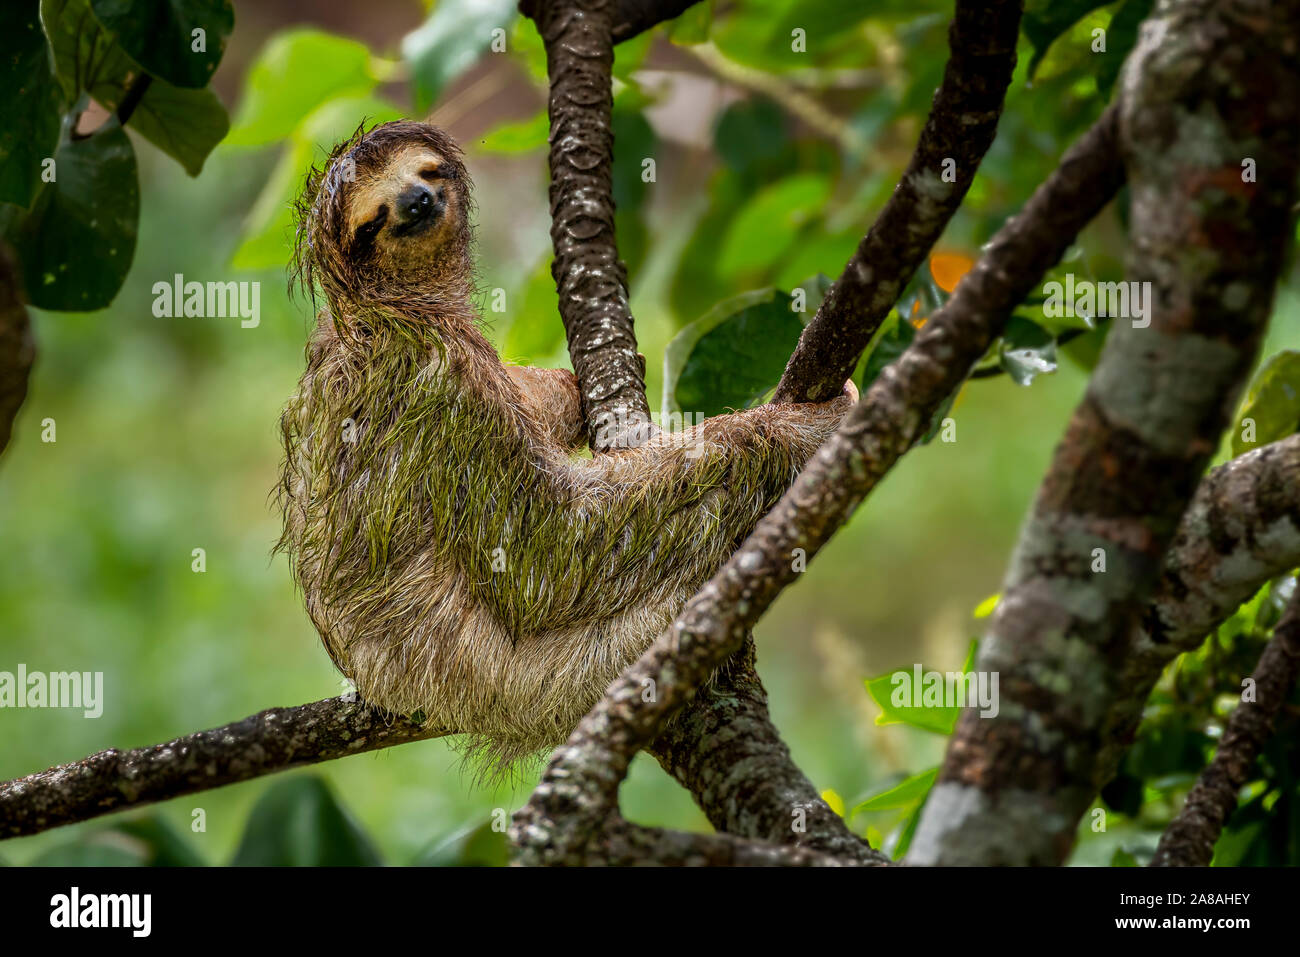 Brown throated three toed sloth image taken in Panamas rain forest Stock Photo